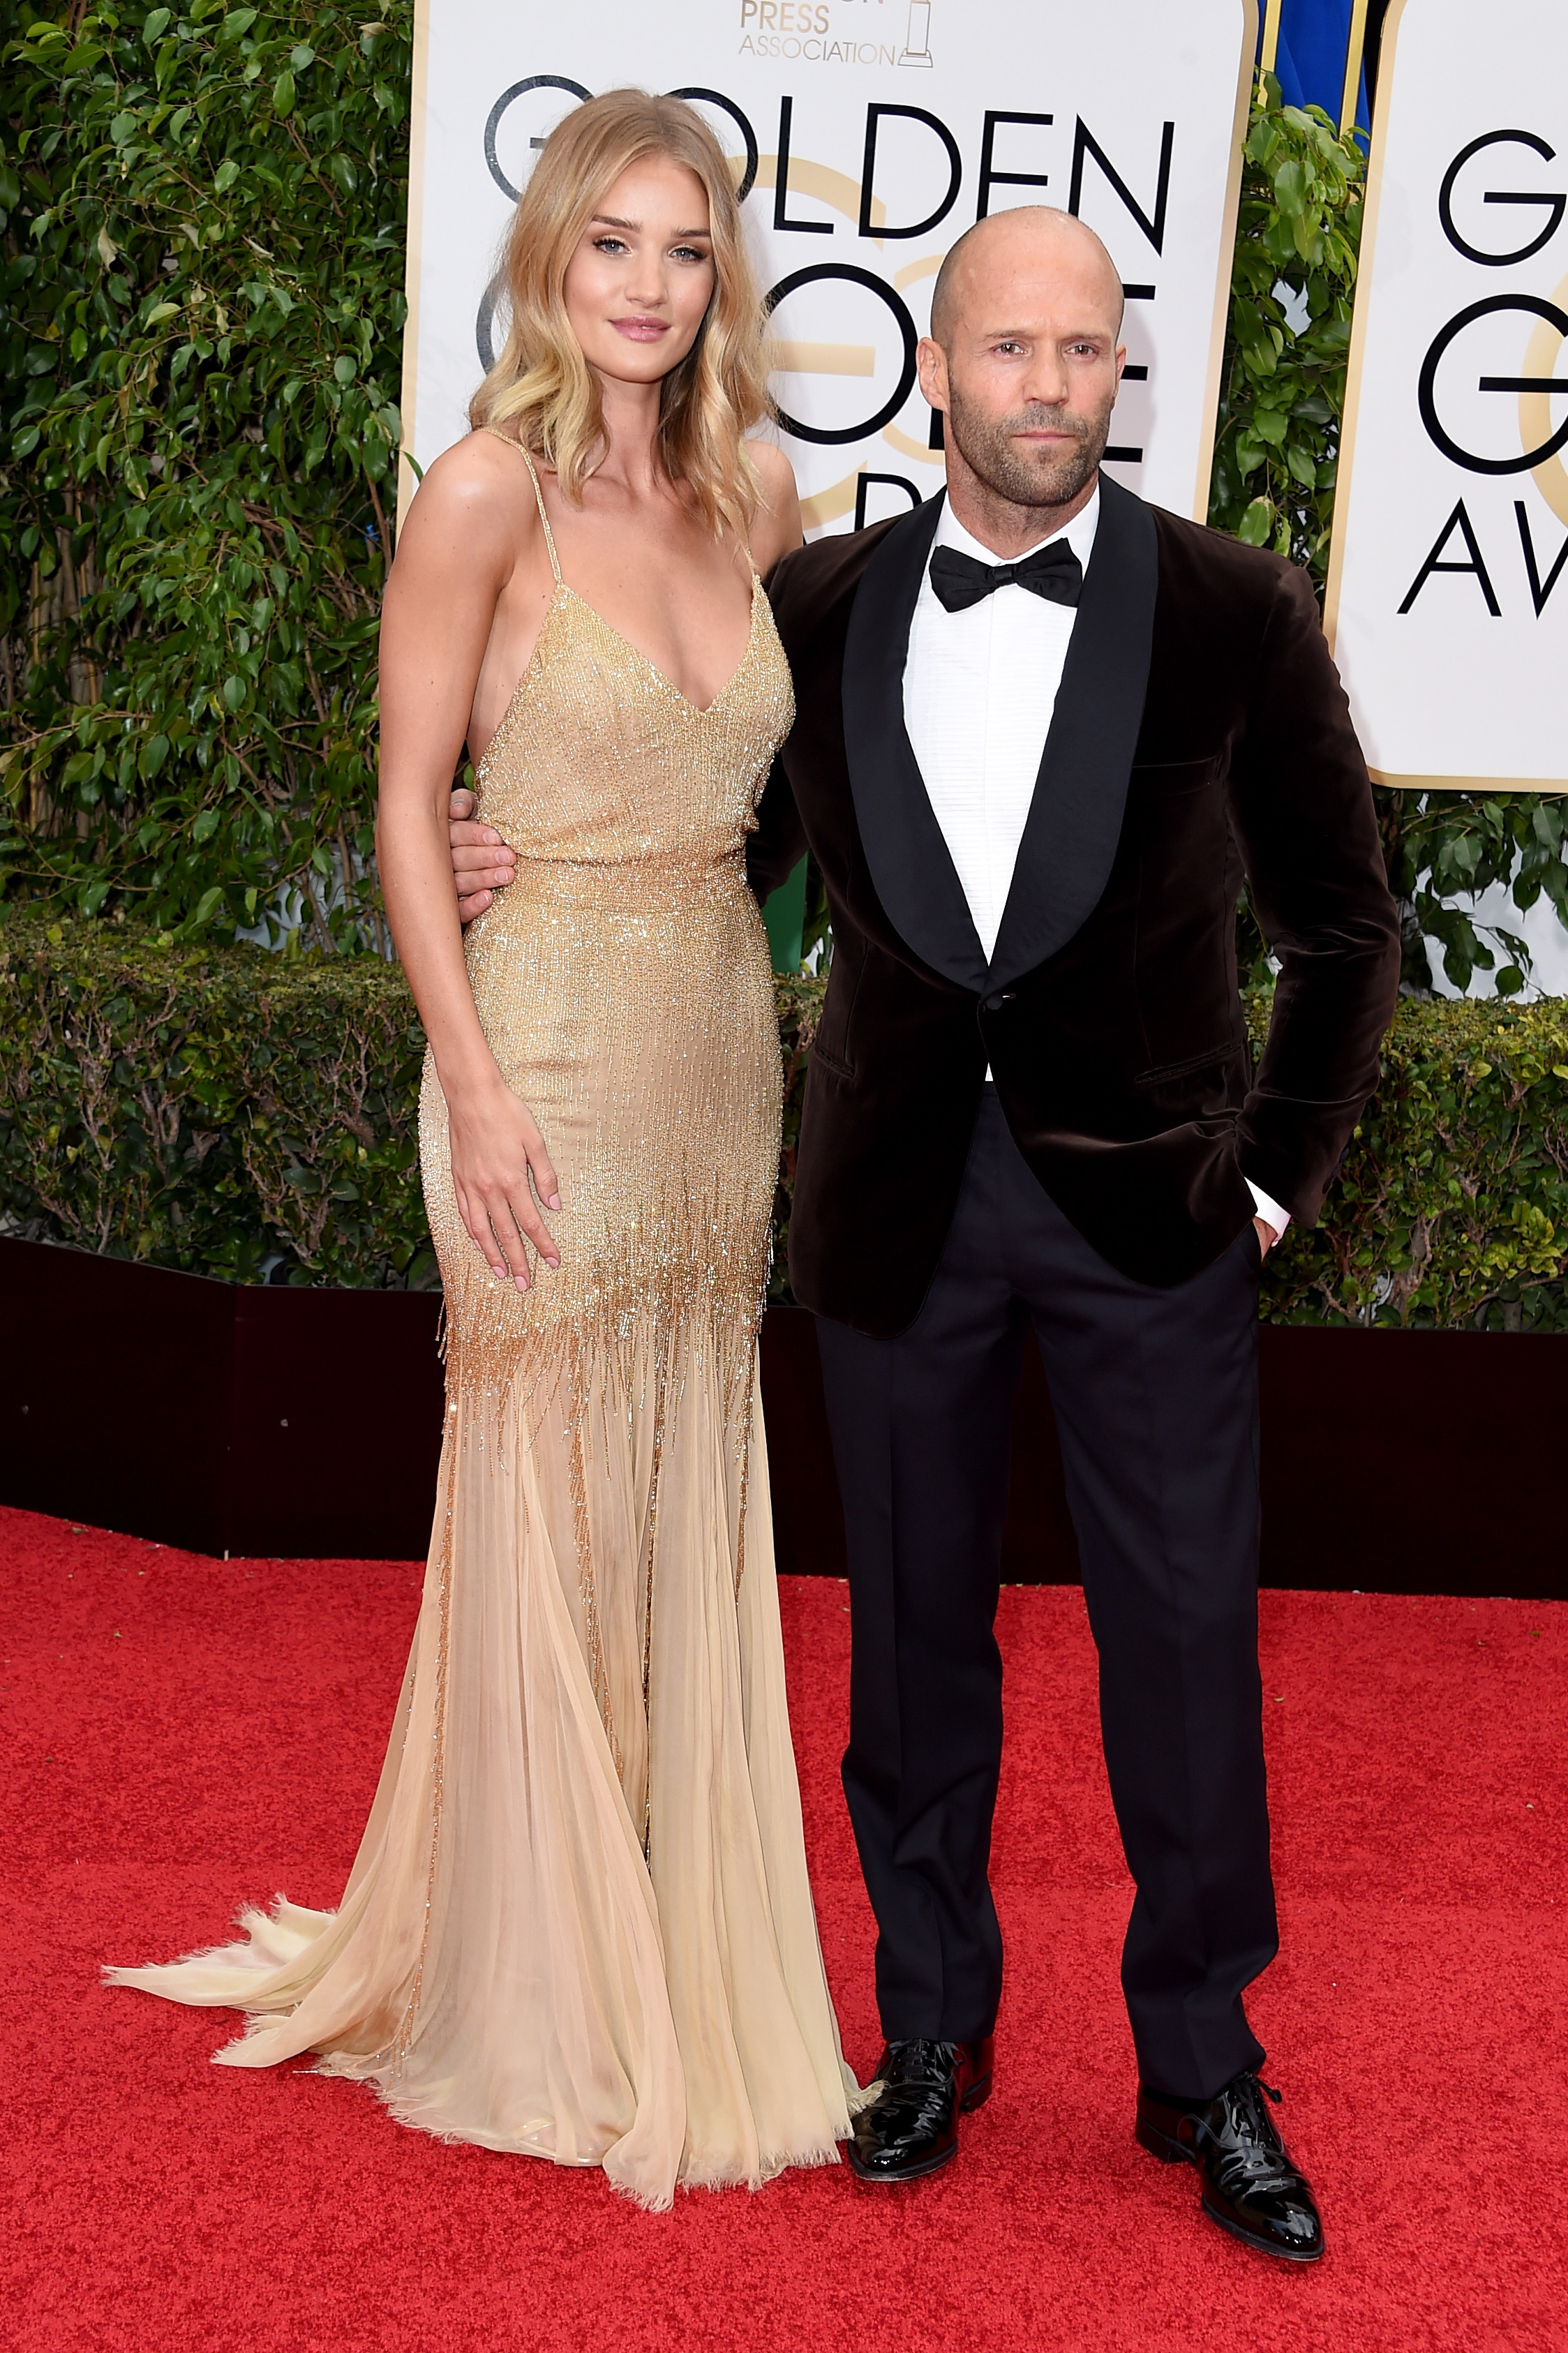 Rosie Huntington-Whiteley and Jason Statham arrive to the 73rd Annual Golden Globe Awards on Jan. 10, 2016 in Beverly Hills.